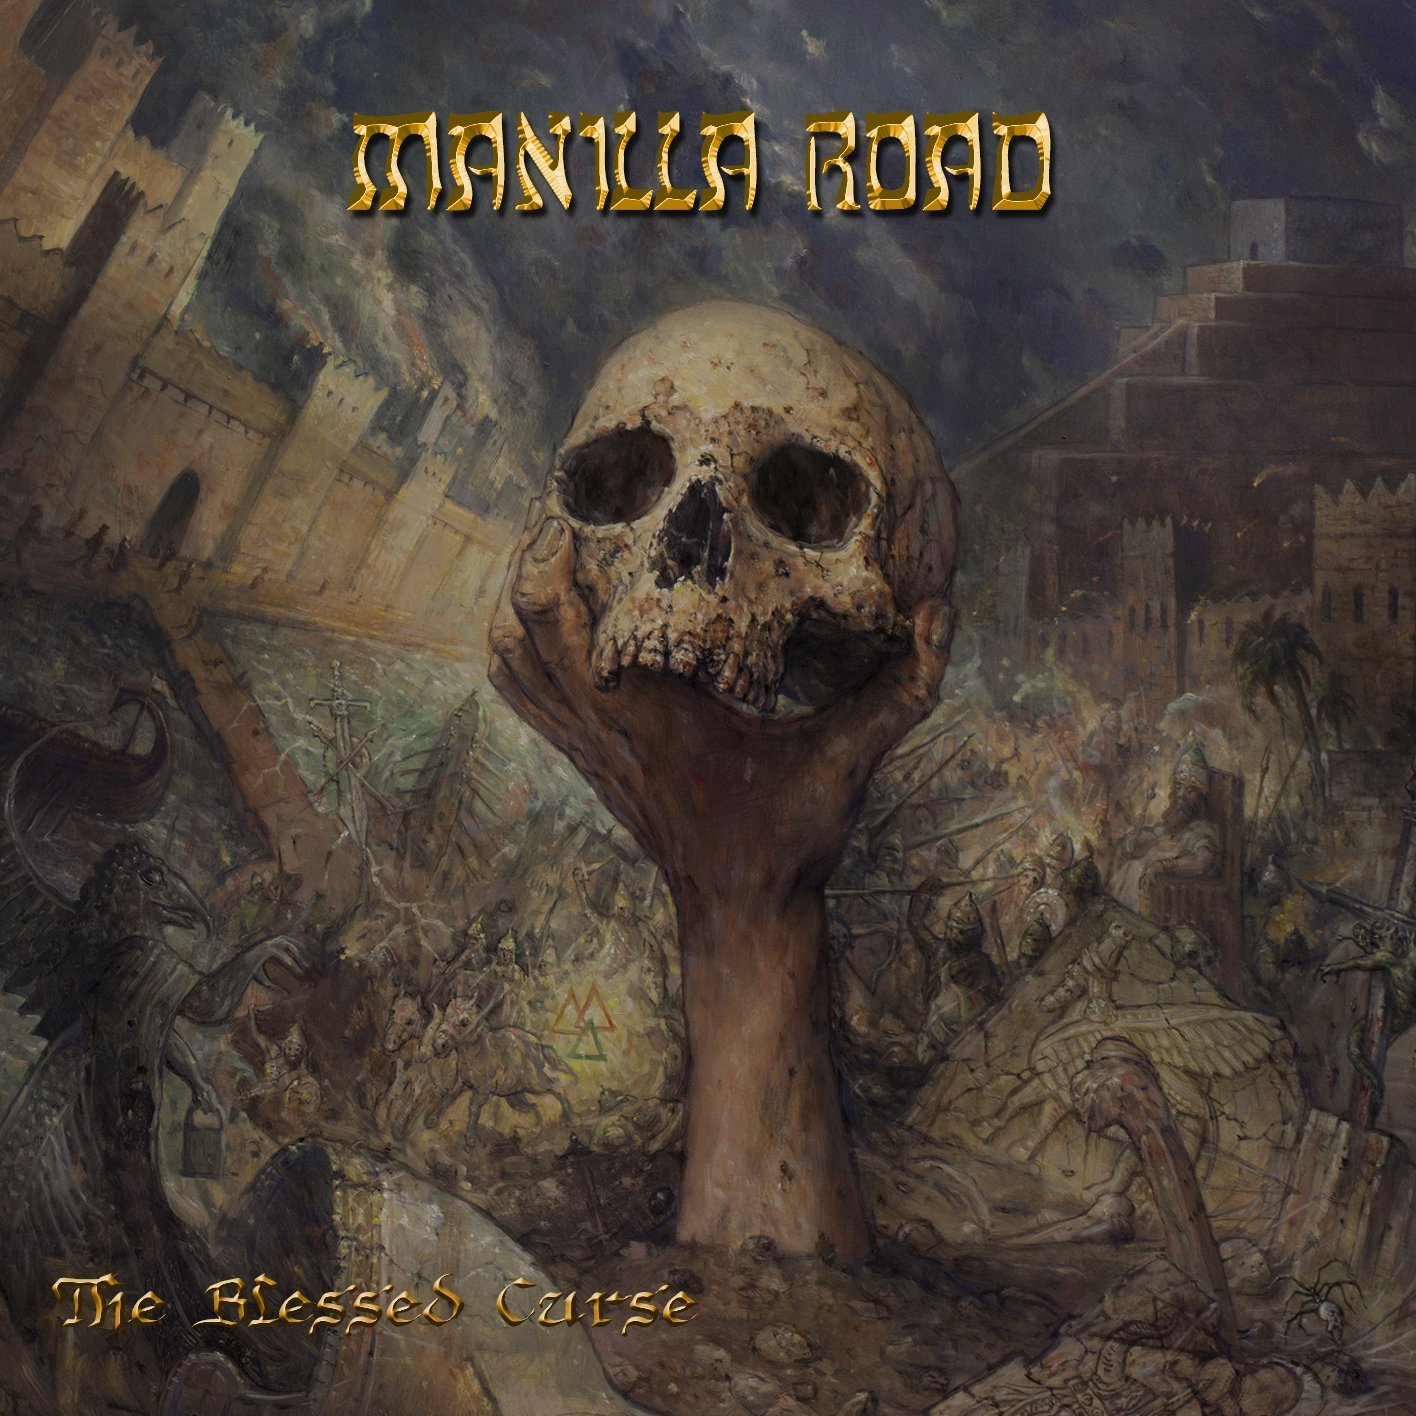 Manilla Road – The Blessed Curse/After the Muse Review